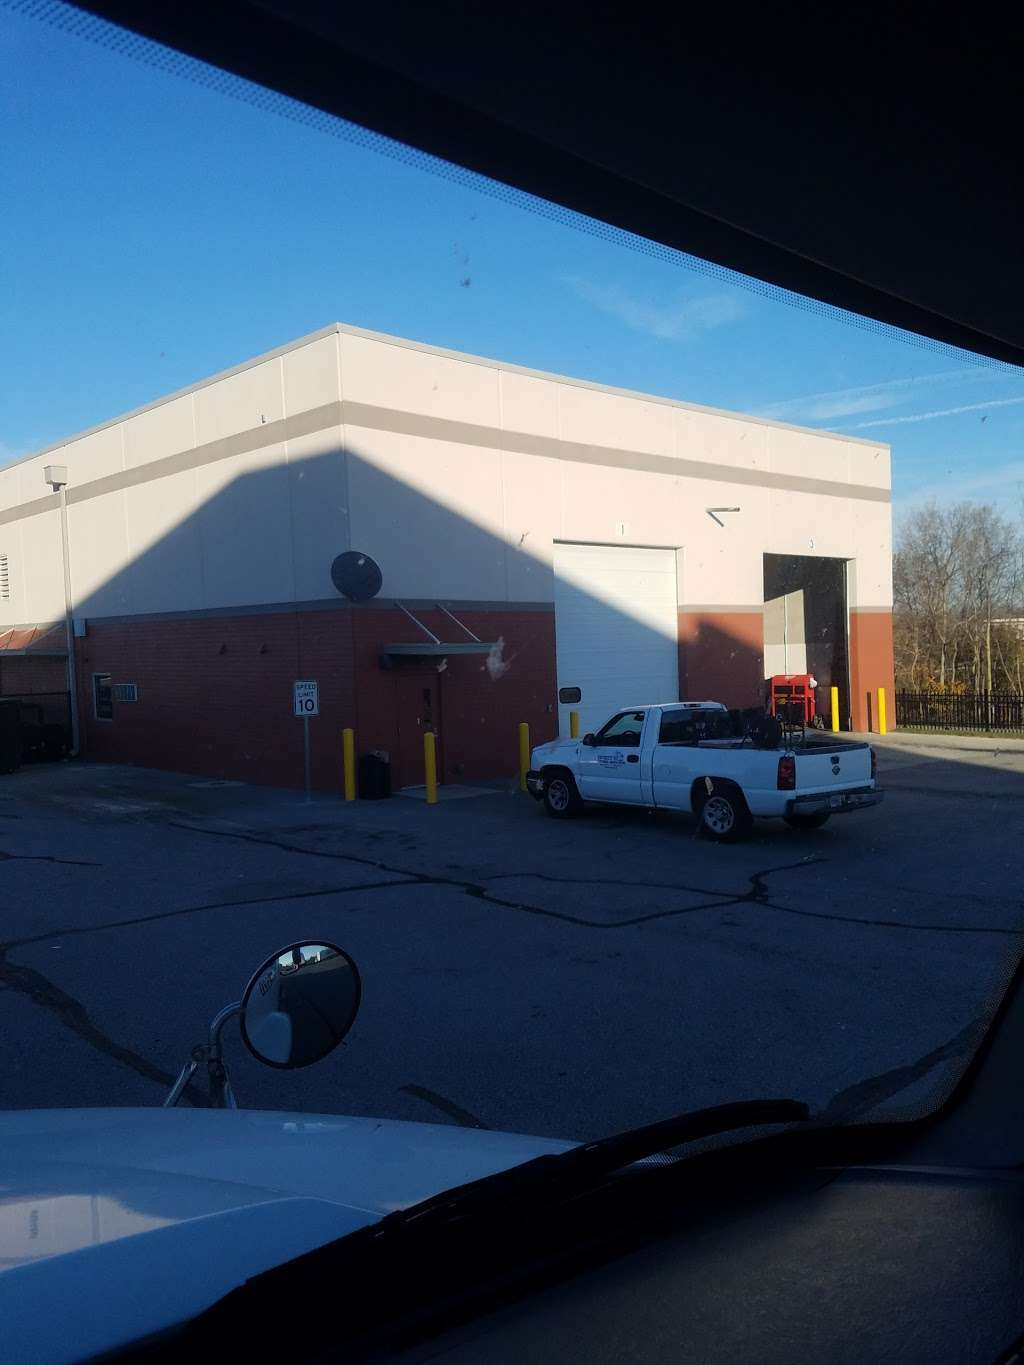 FedEx Ground - moving company  | Photo 4 of 10 | Address: 10301 Bennett Pkwy, Zionsville, IN 46077, USA | Phone: (800) 463-3339